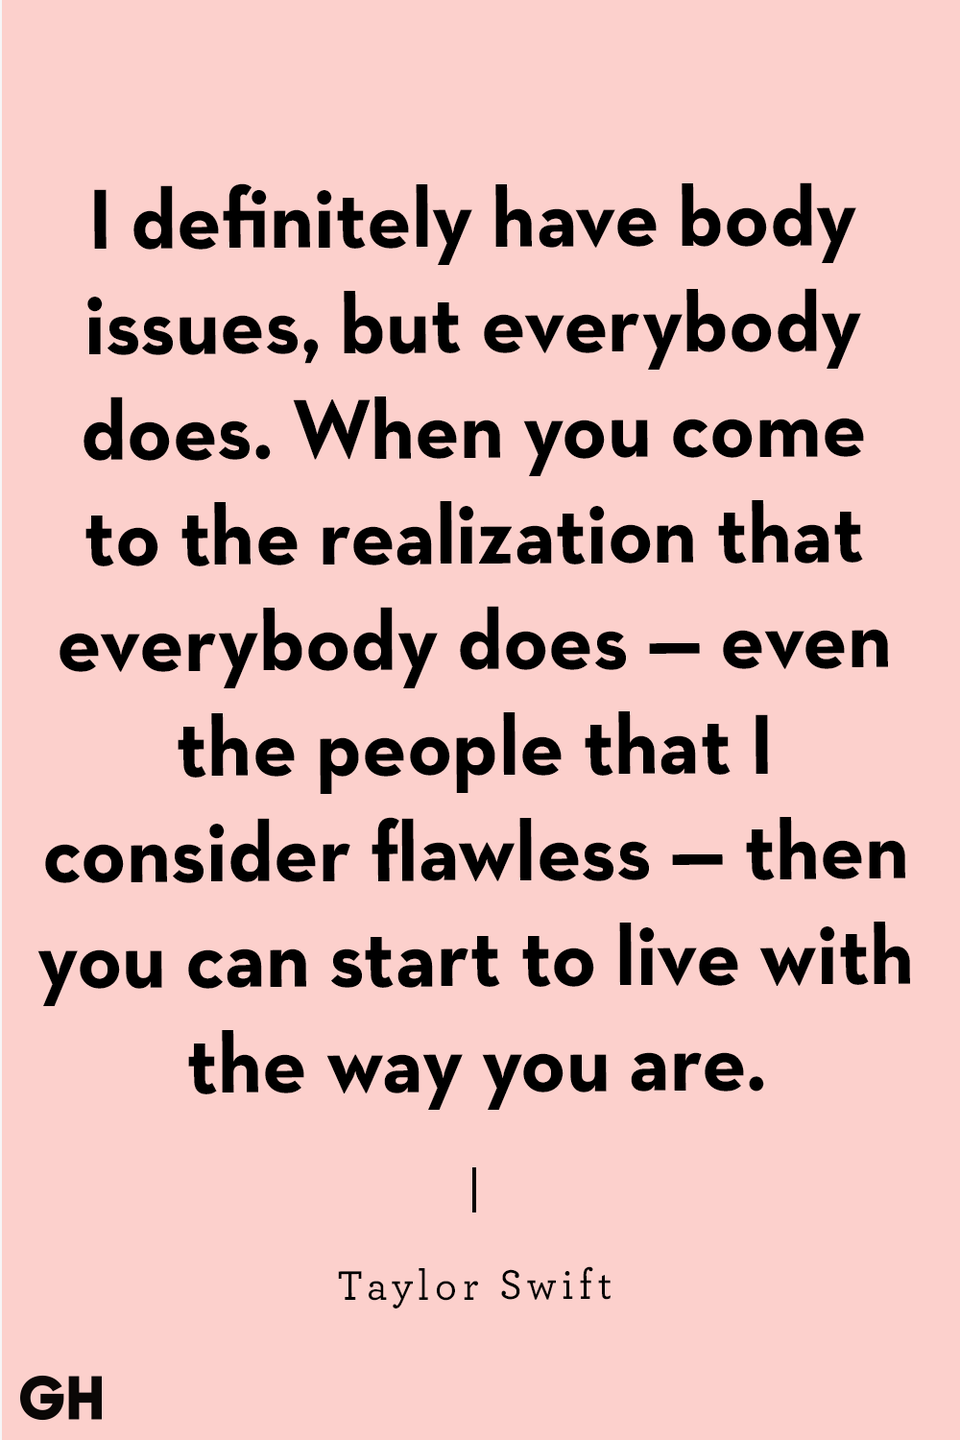 "<p>""I definitely have body issues, but everybody does. When you come to the realization that everybody does — even the people that I consider flawless — then you can start to live with the way you are."" </p>"